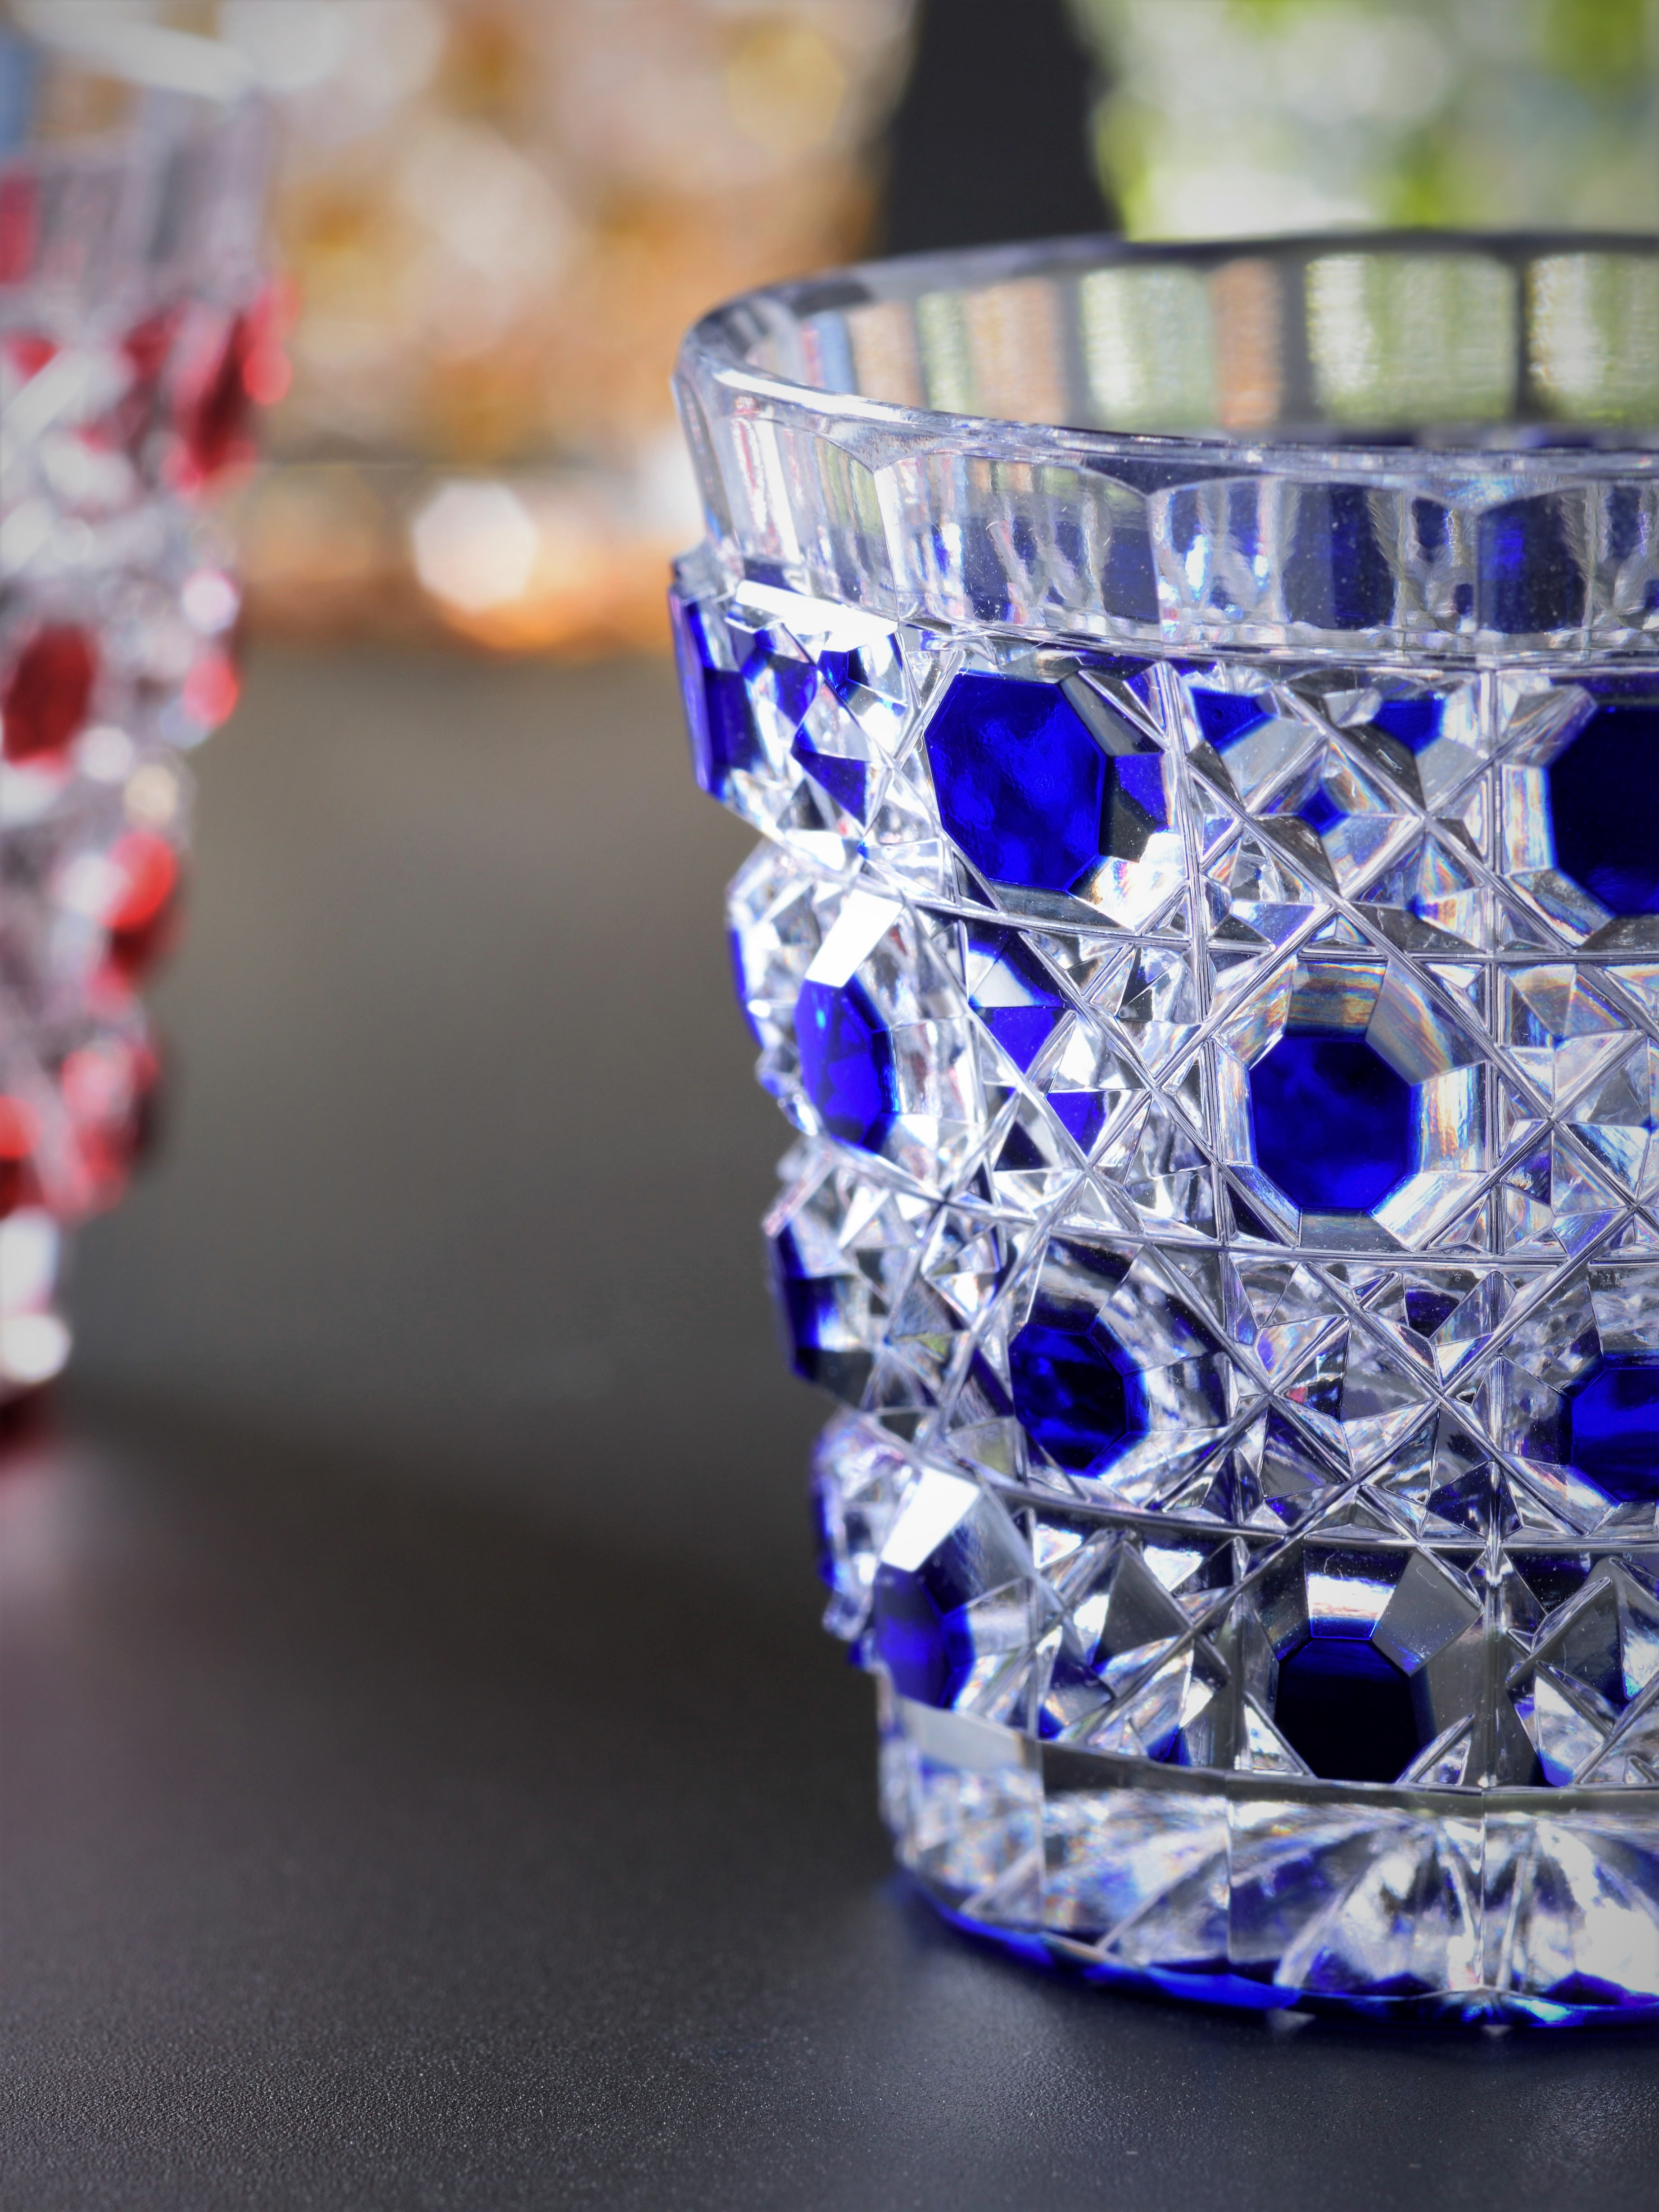 Picture of blue glass